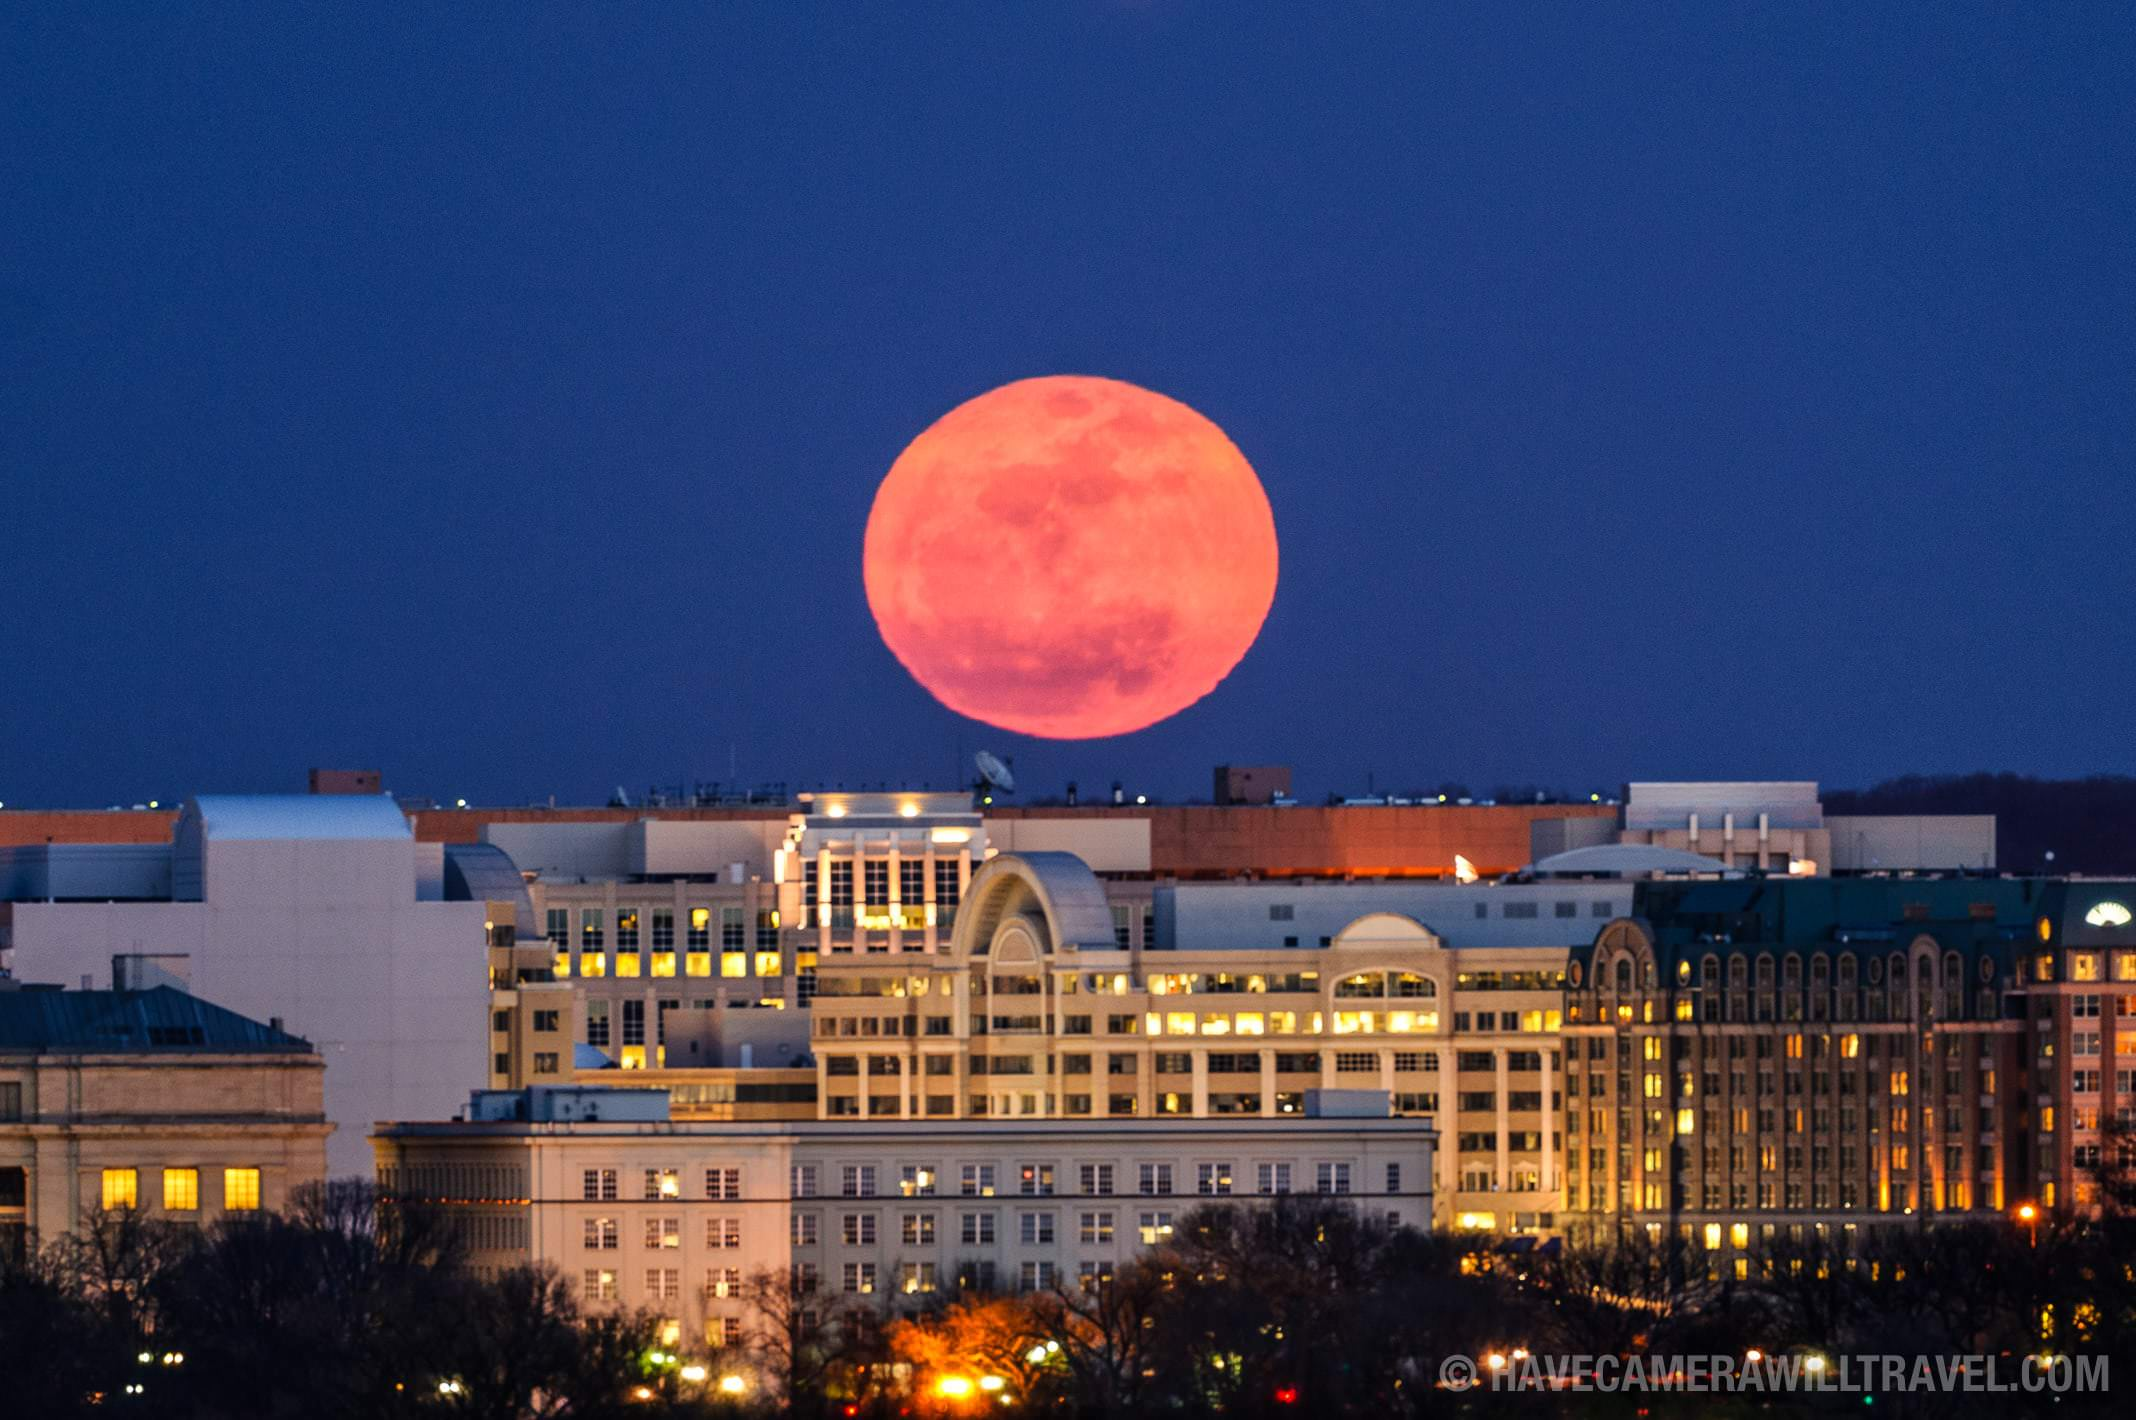 2011 Super Moon rising over Washington DC